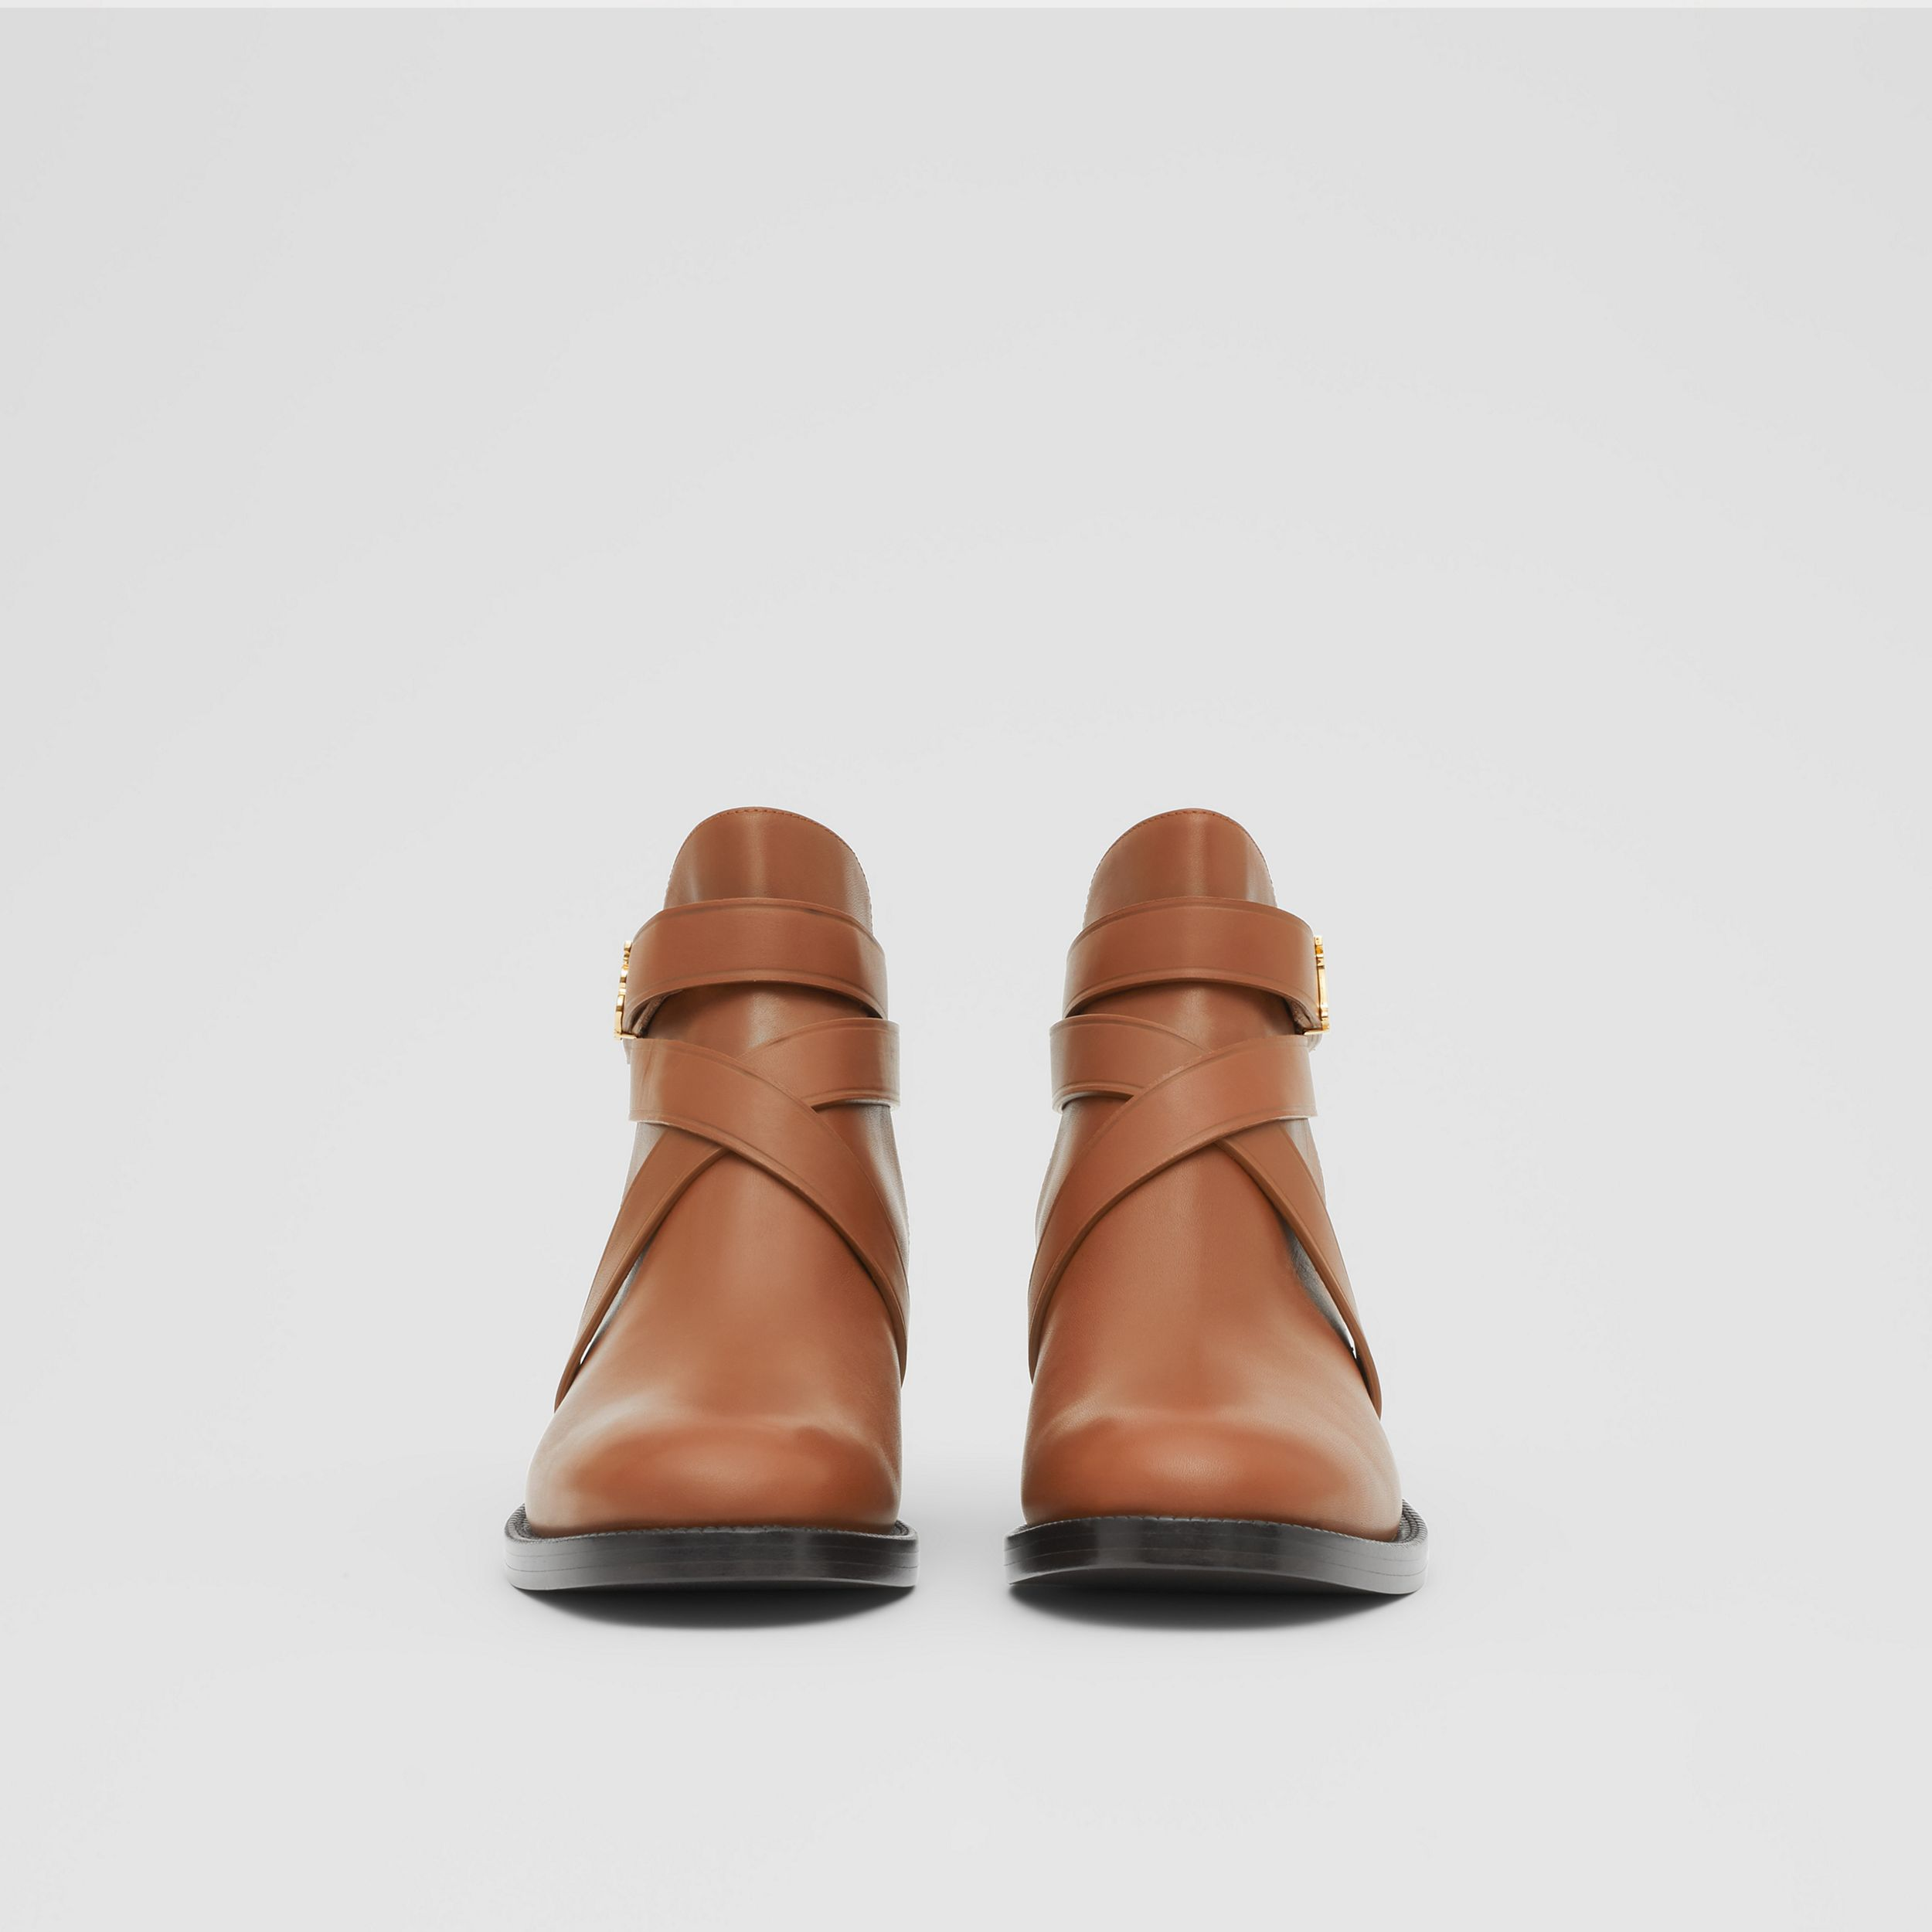 Monogram Motif Leather Ankle Boots in Tan - Women | Burberry Canada - 4